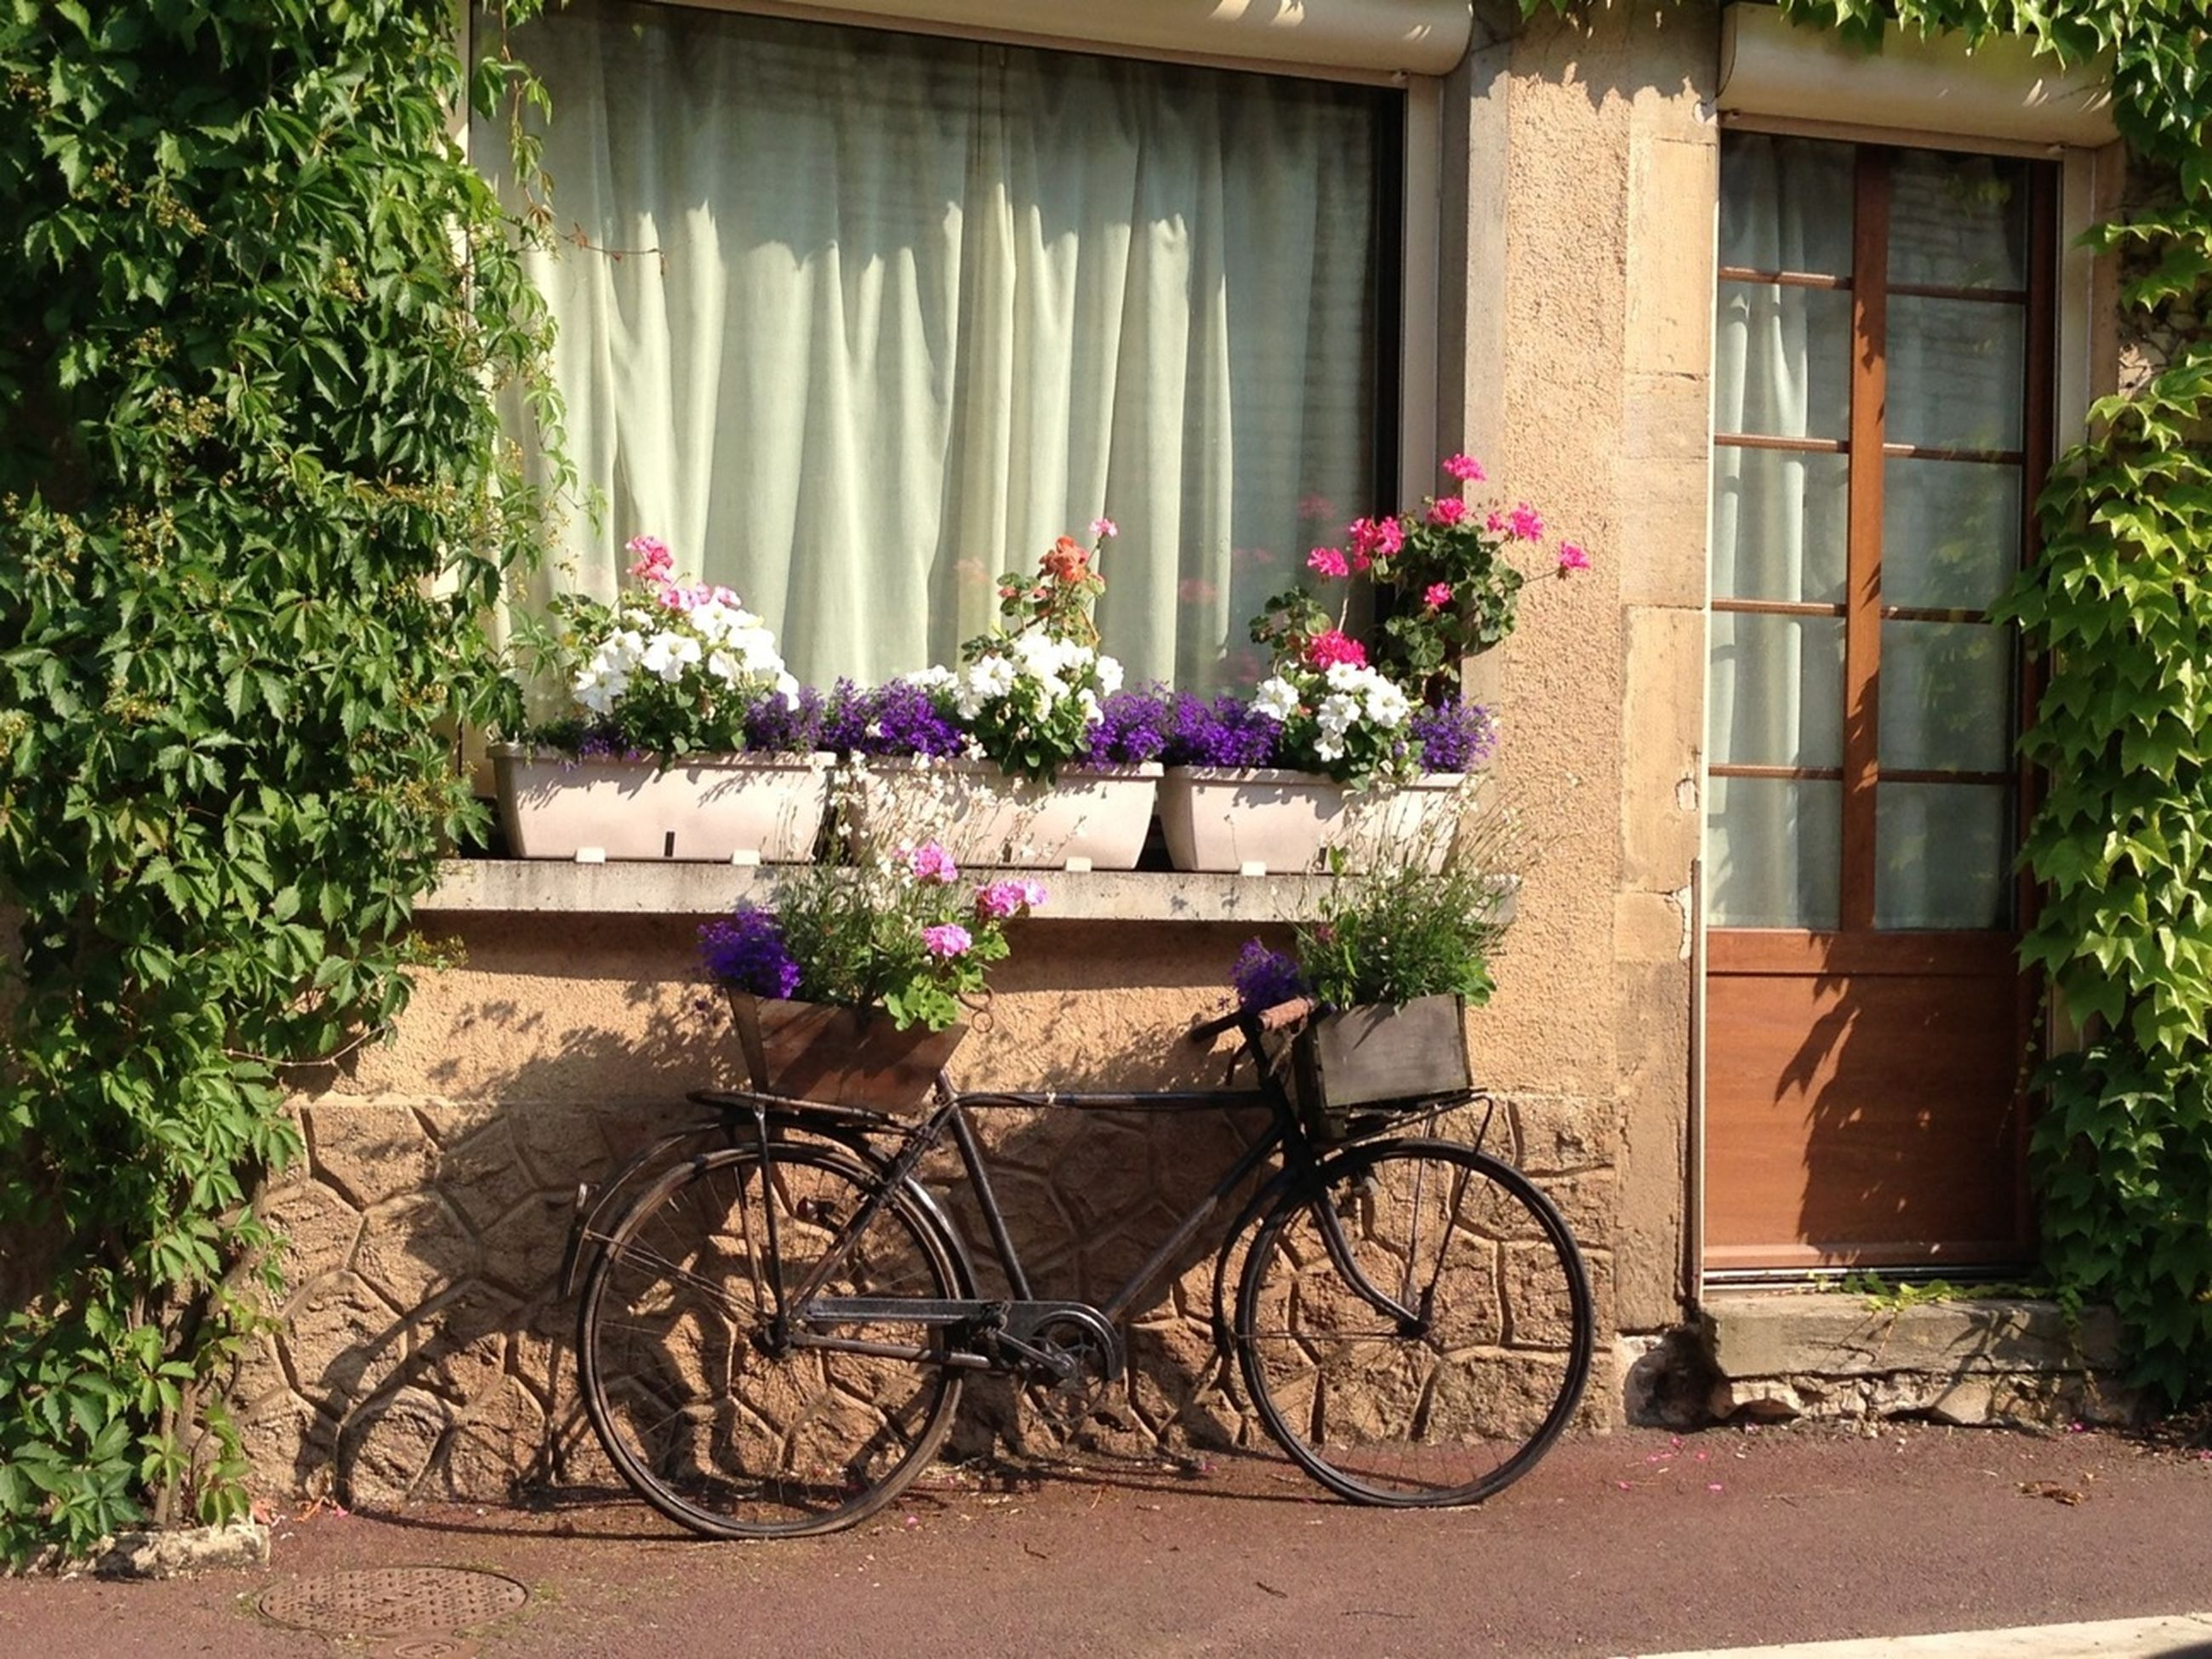 bicycle, building exterior, architecture, stationary, built structure, parked, mode of transport, transportation, land vehicle, parking, house, window, day, potted plant, wall, tree, no people, flower, plant, growth